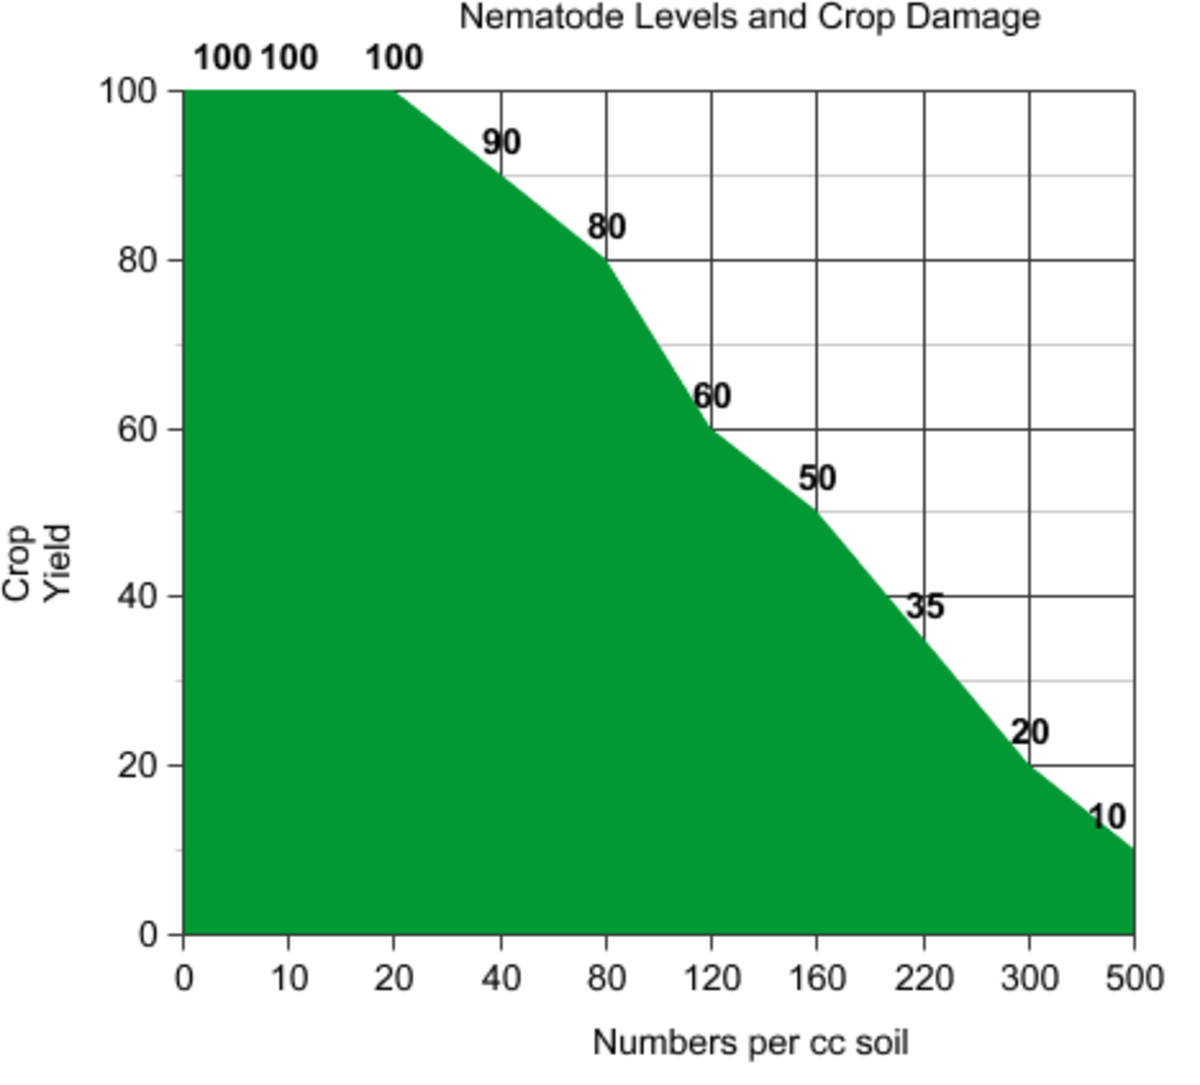 Loss of plant production by nematode damage is related to the number of nematodes in the soil.  Low density levels do not cause significant damage.  Soil tests can be performed by state laboratories.